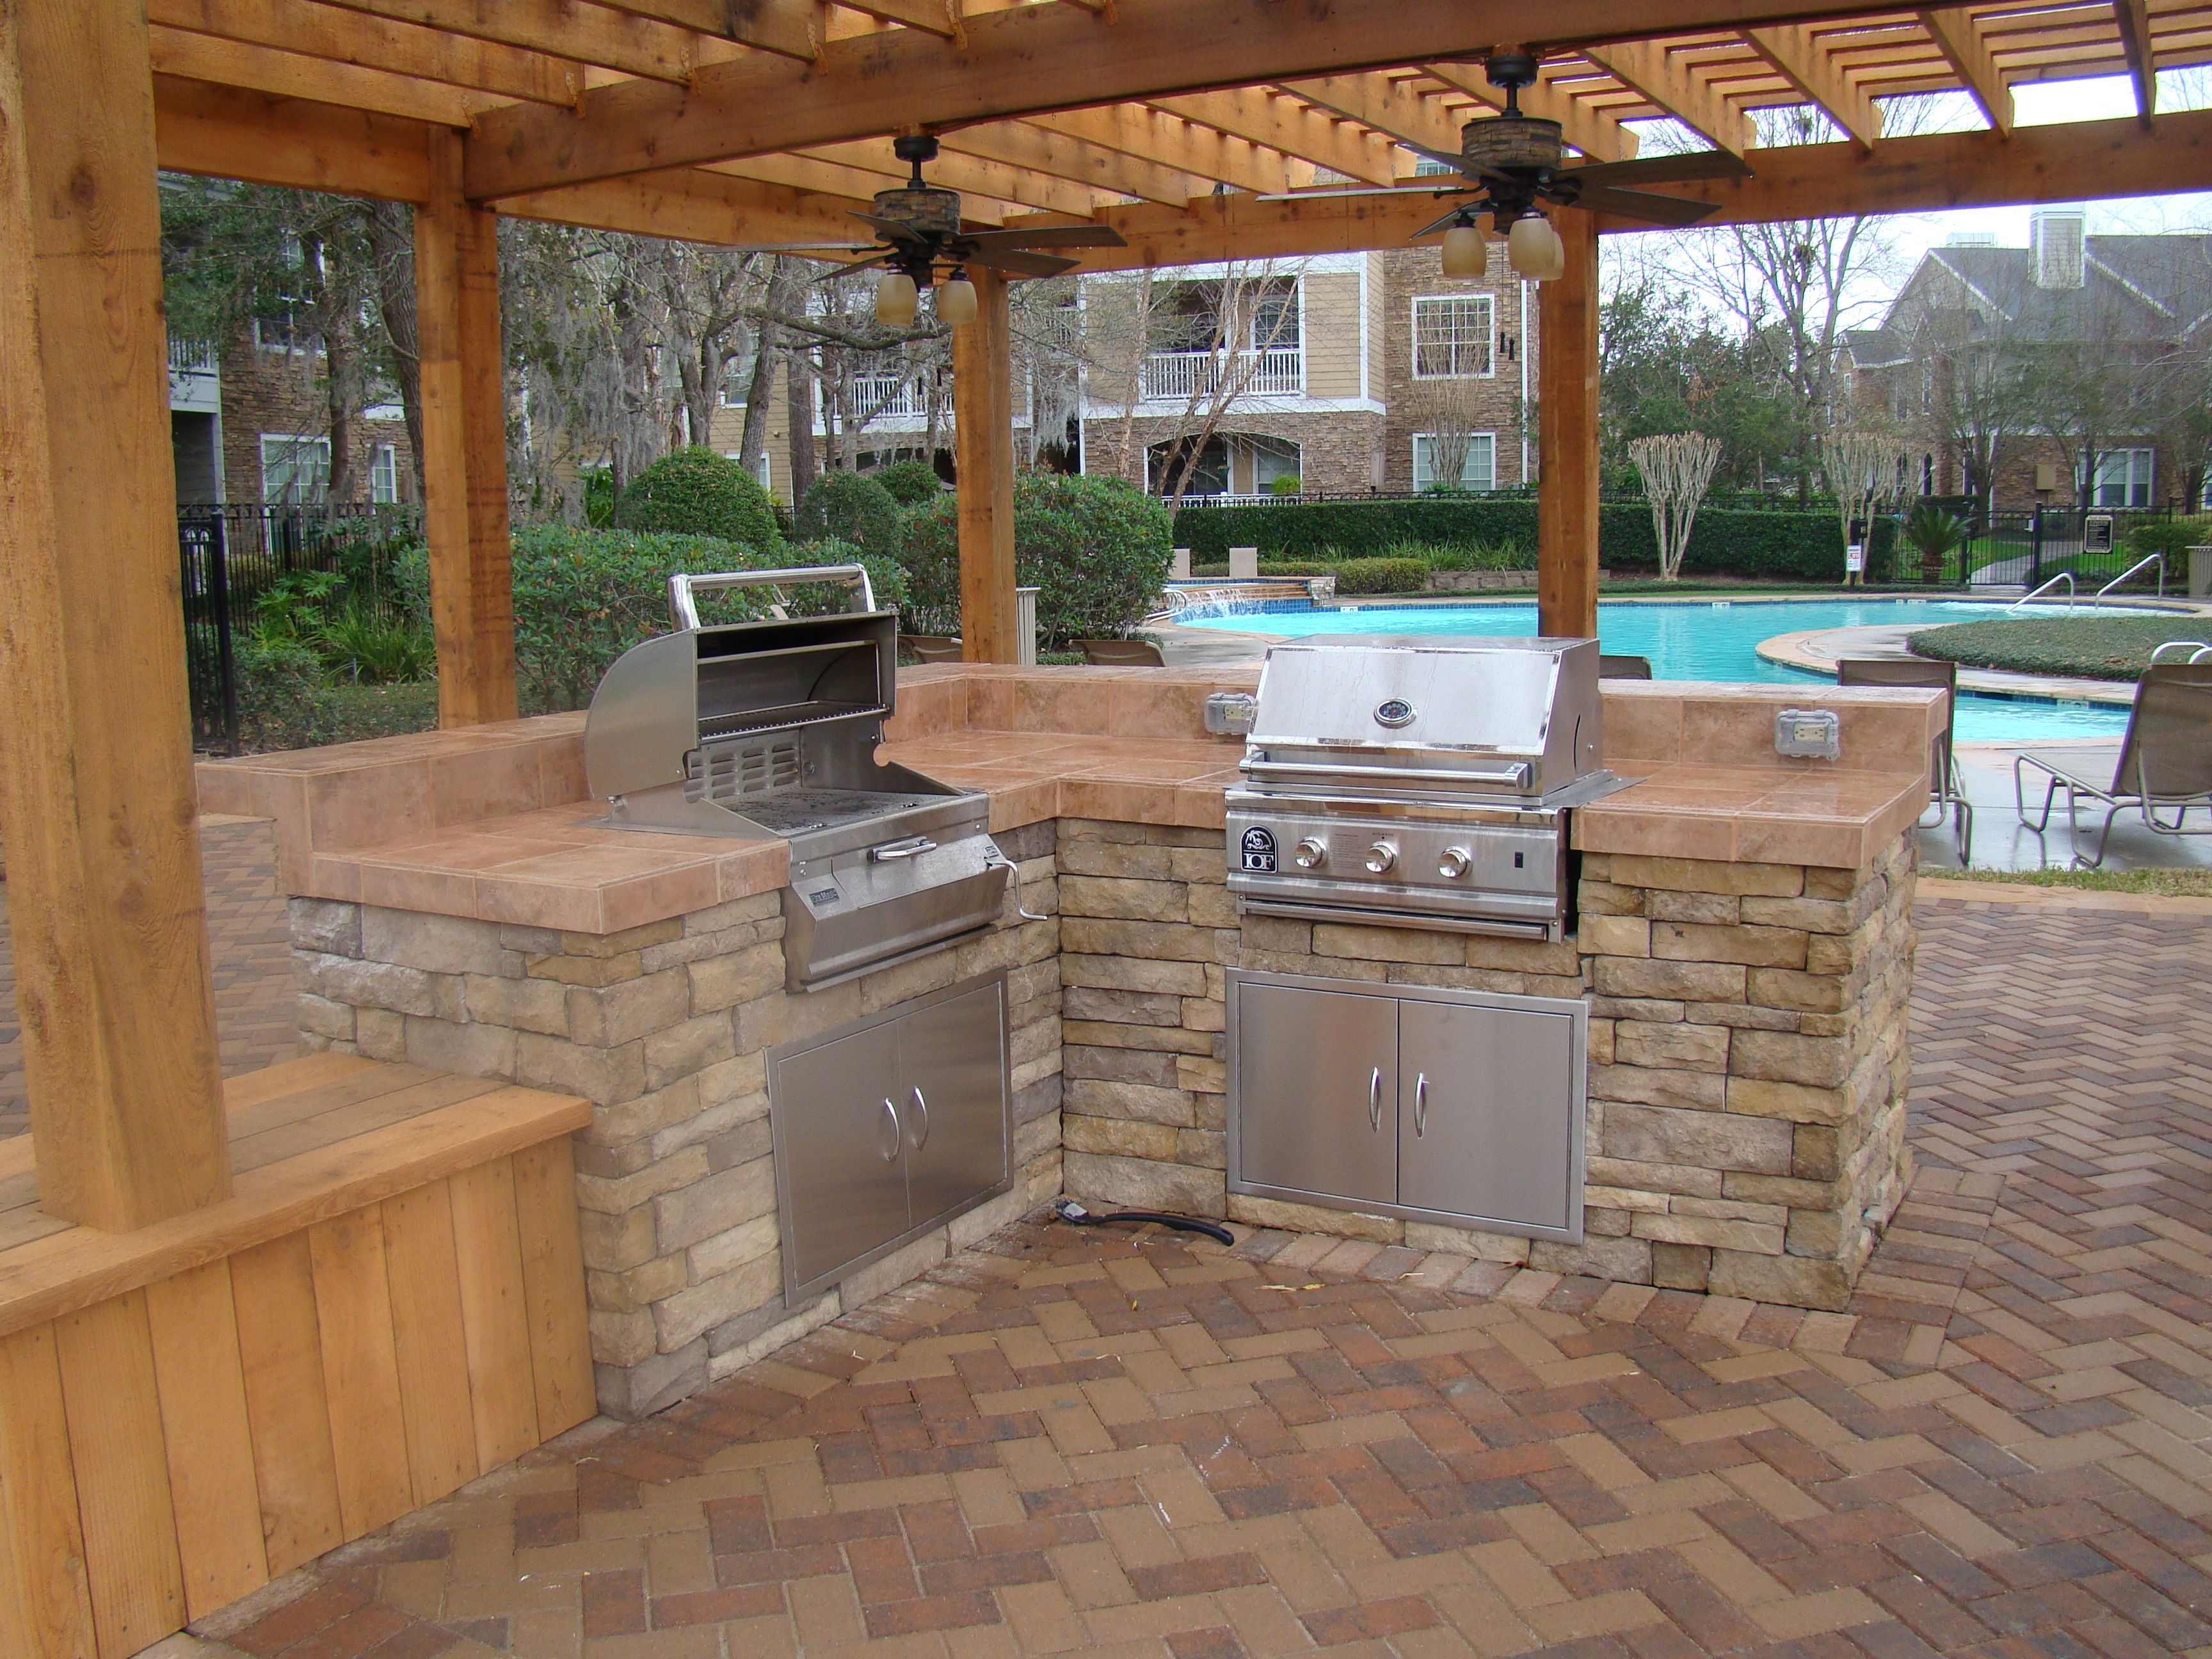 Image of: References Outdoor Kitchen Wood Countertops Free References Home In Outdoor Kitchen Wood Countertops Nice Outdoor Kitchen Wood Countertops Inspiration